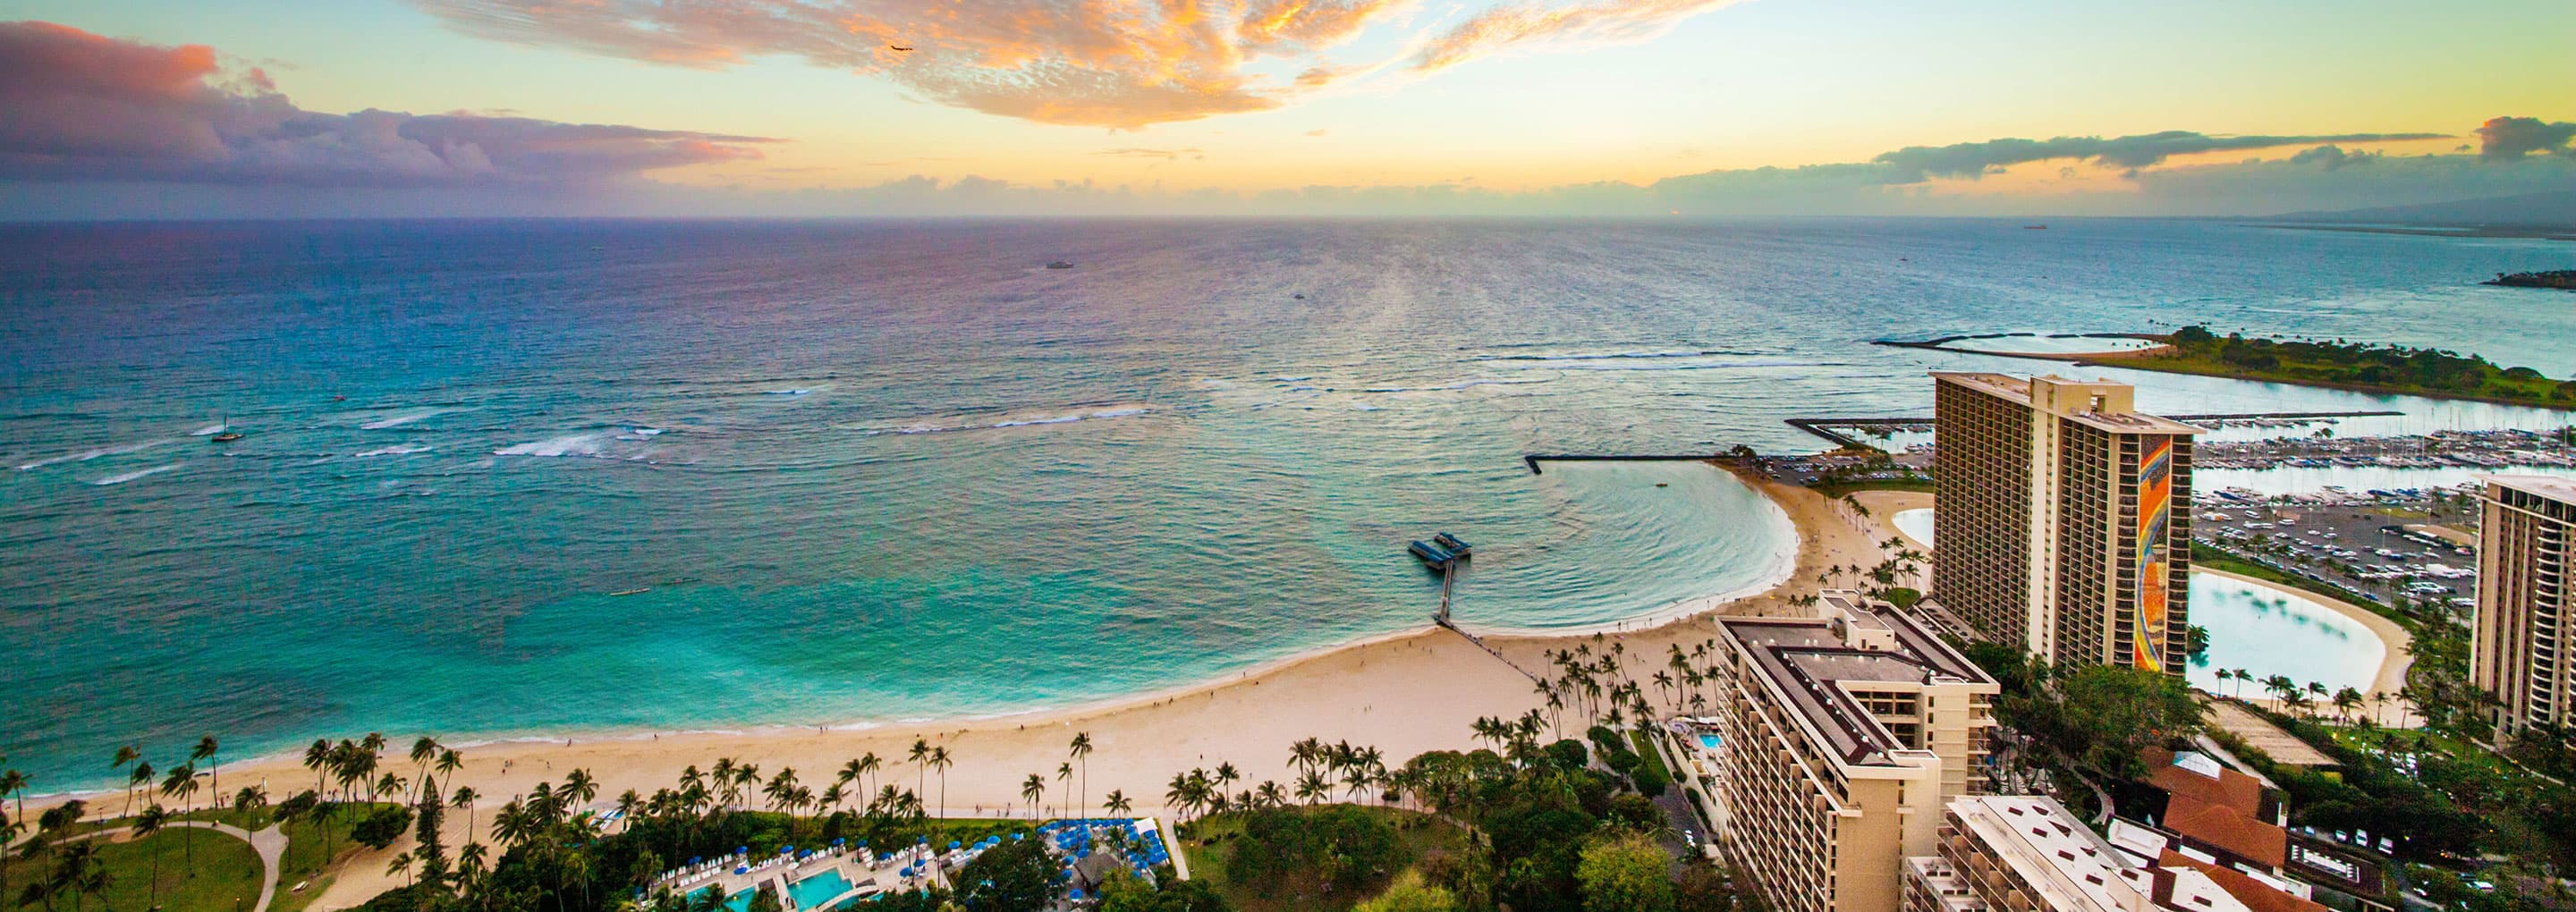 Helicopter Night Tours Oahu